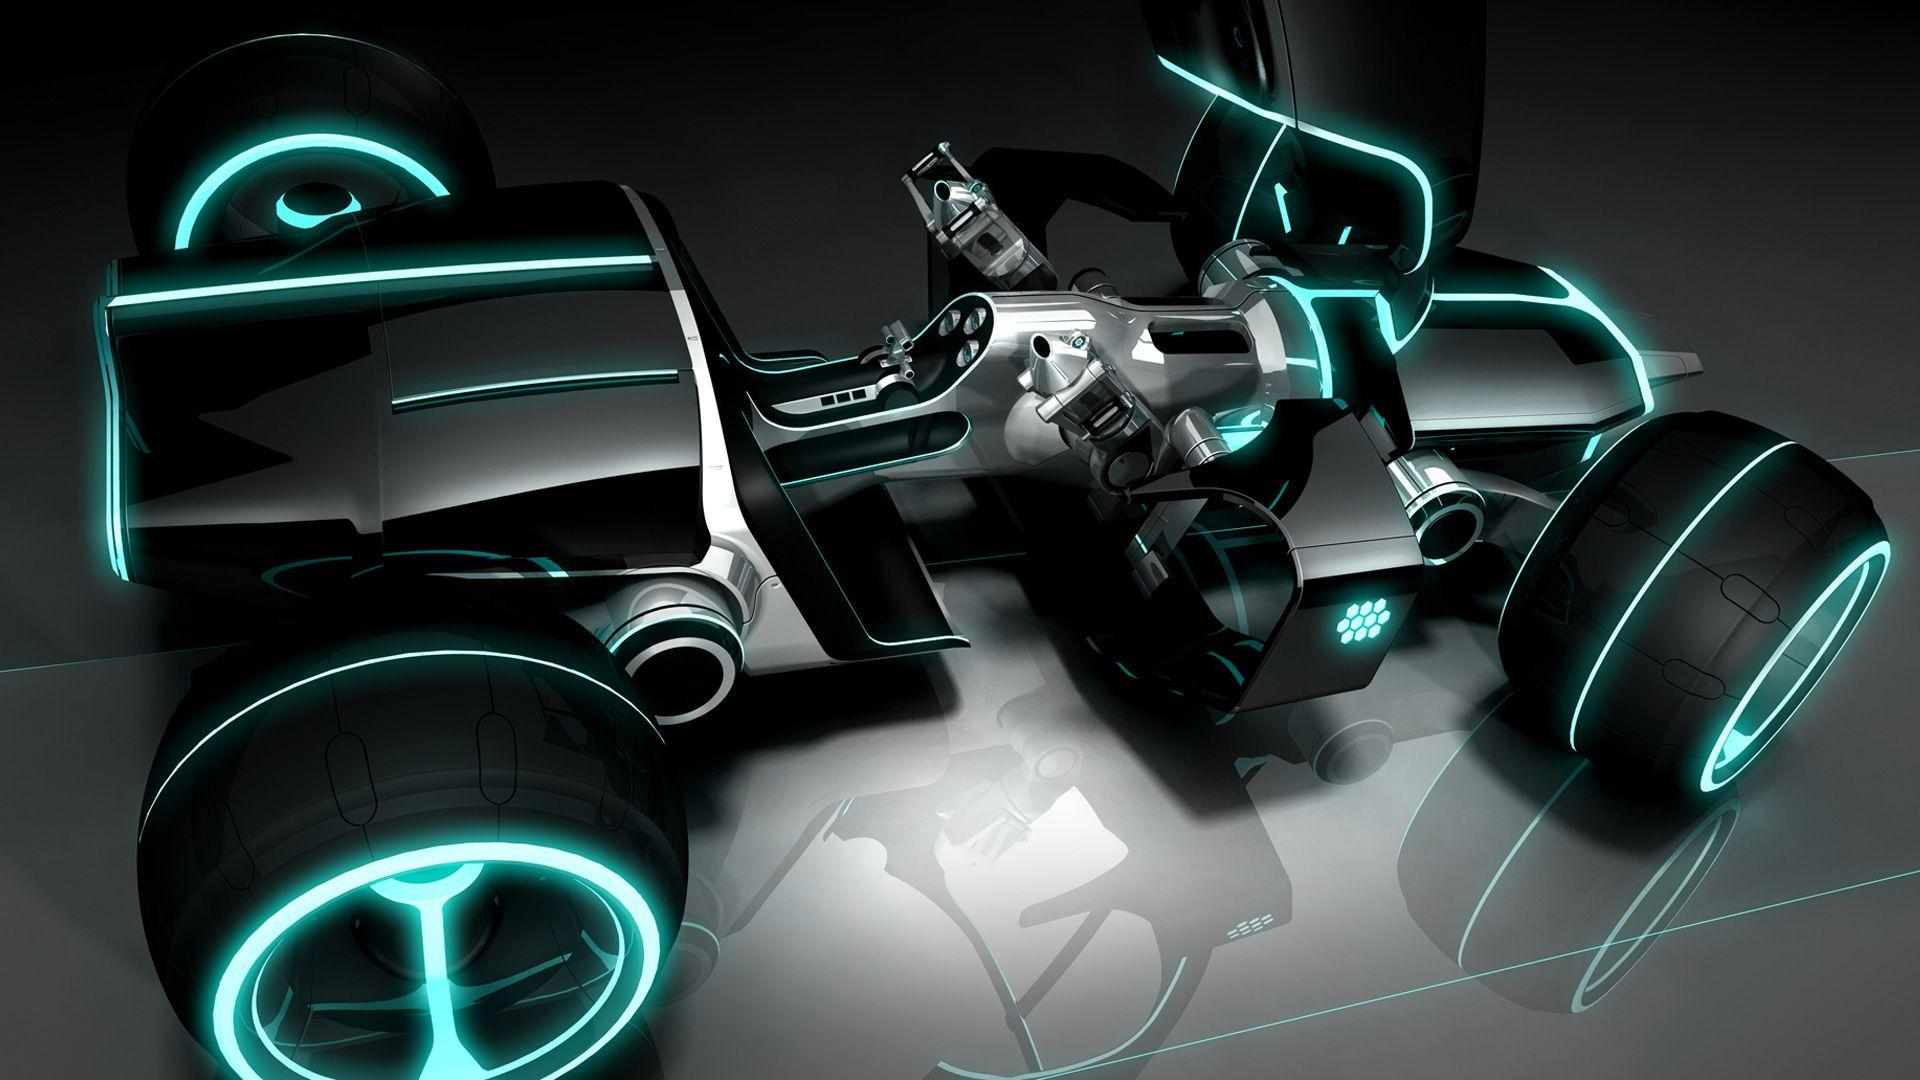 Movies Tron Legacy Light Car Wallpapers Desktop Phone Tablet